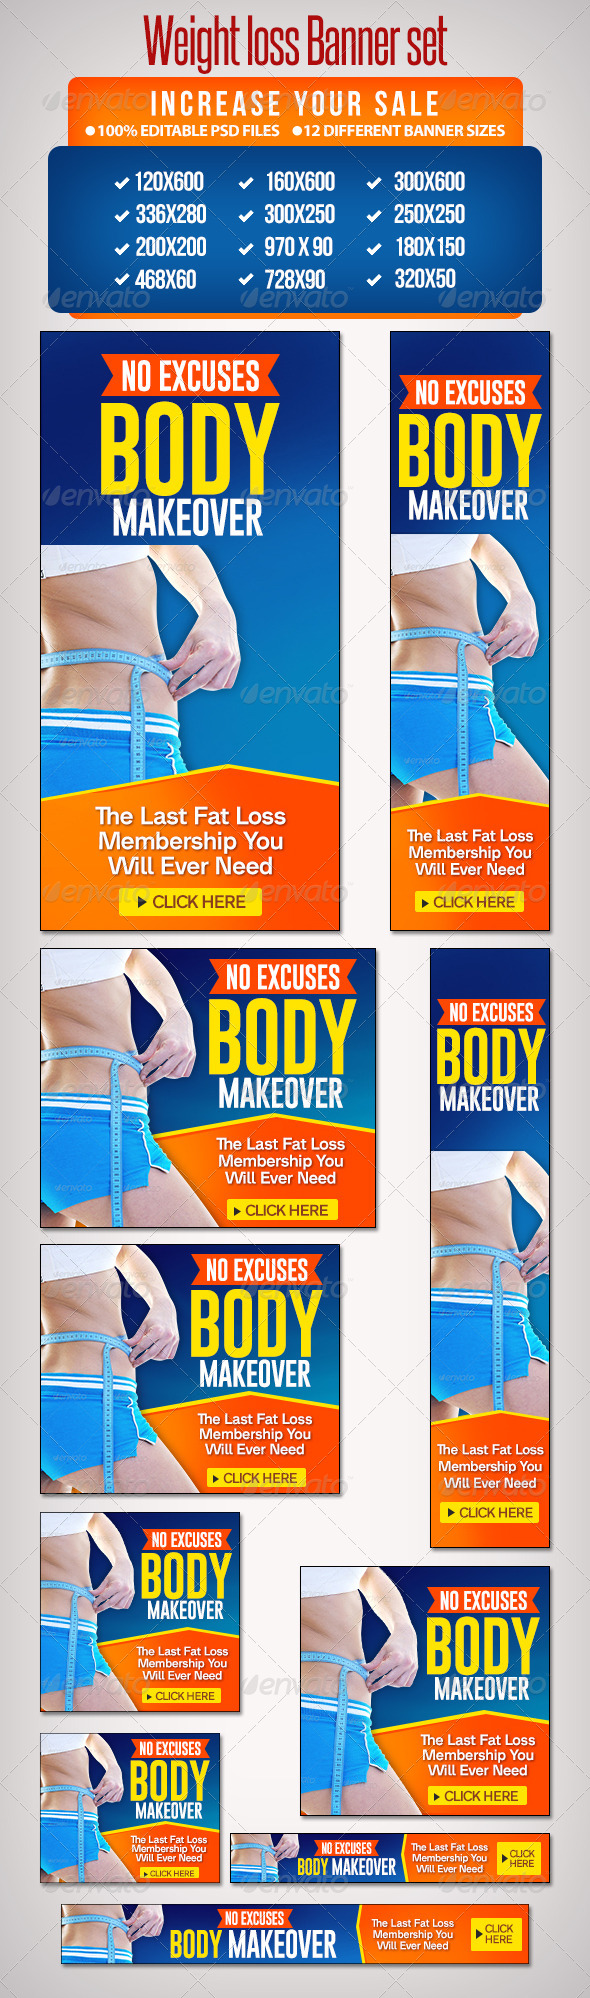 Weightloss Banner Set 3 - 12 Google Standard Sizes - Banners & Ads Web Elements